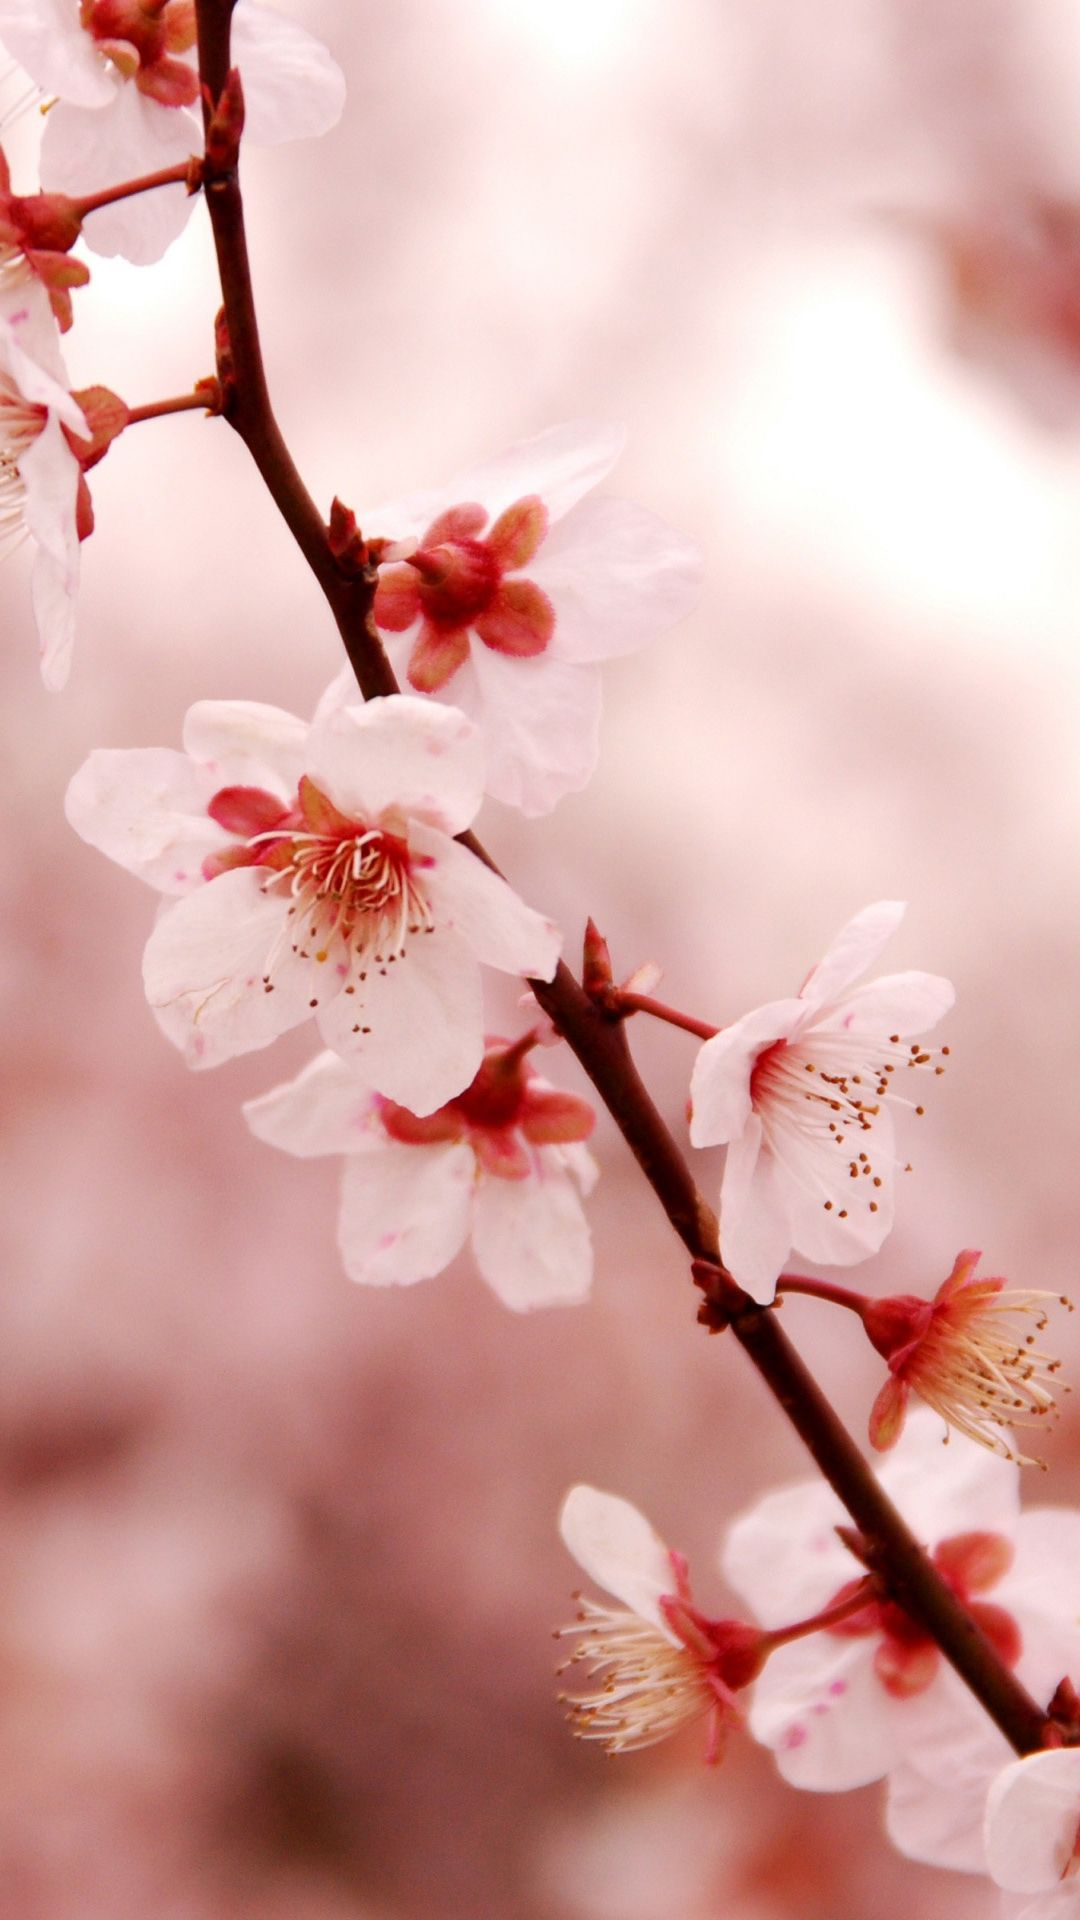 Cherry Blossom Iphone Wallpaper Download Free Cherry Blossom Wallpaper Cherry Blossom Background Sakura Flower